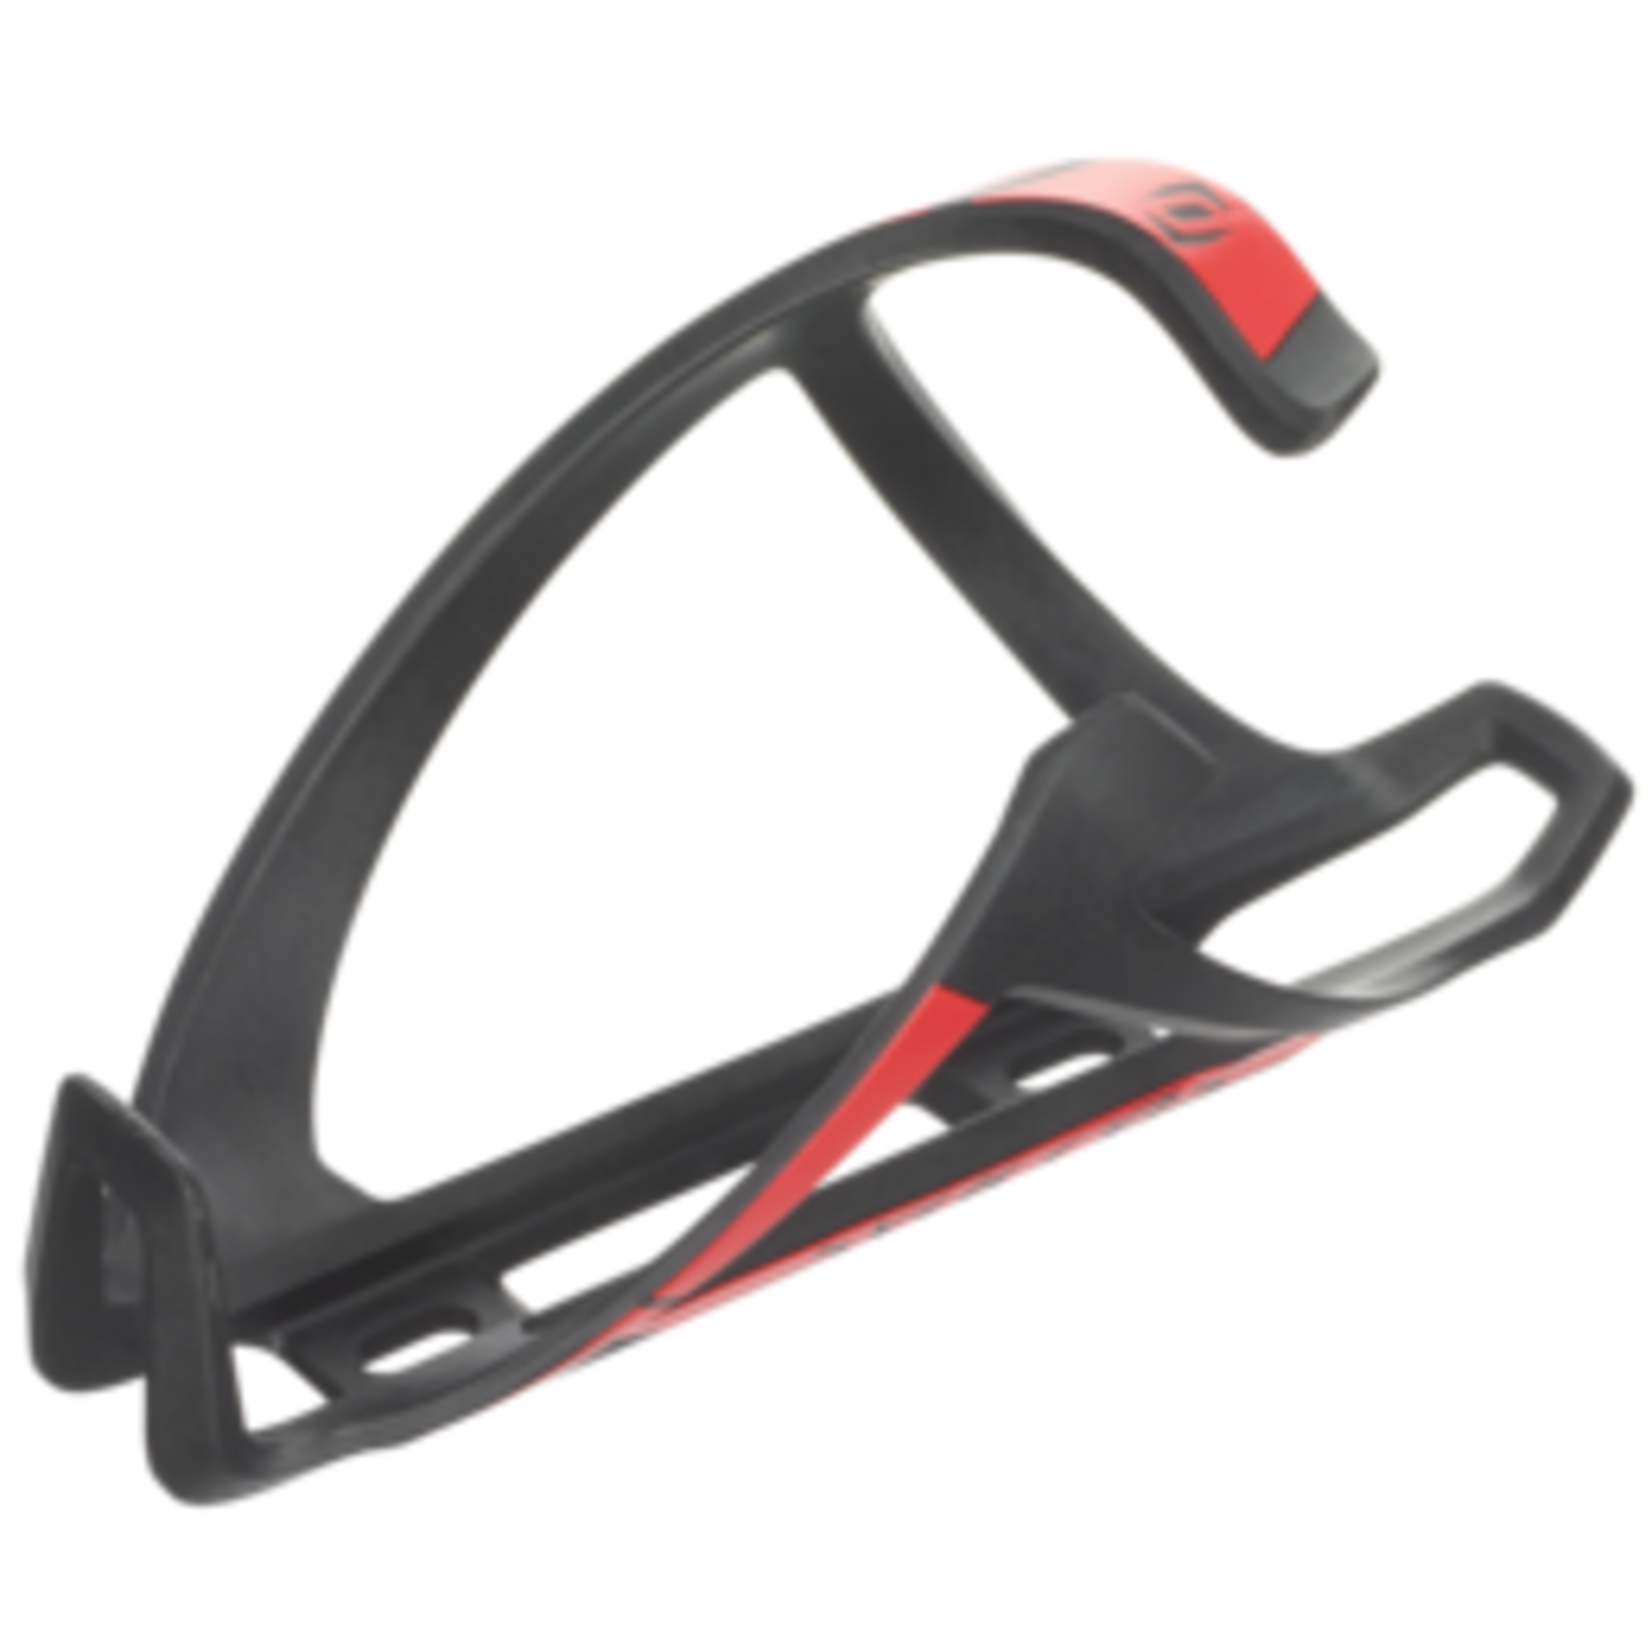 Syncros SYN Bottle Cage Tailor cage 2.0 R.